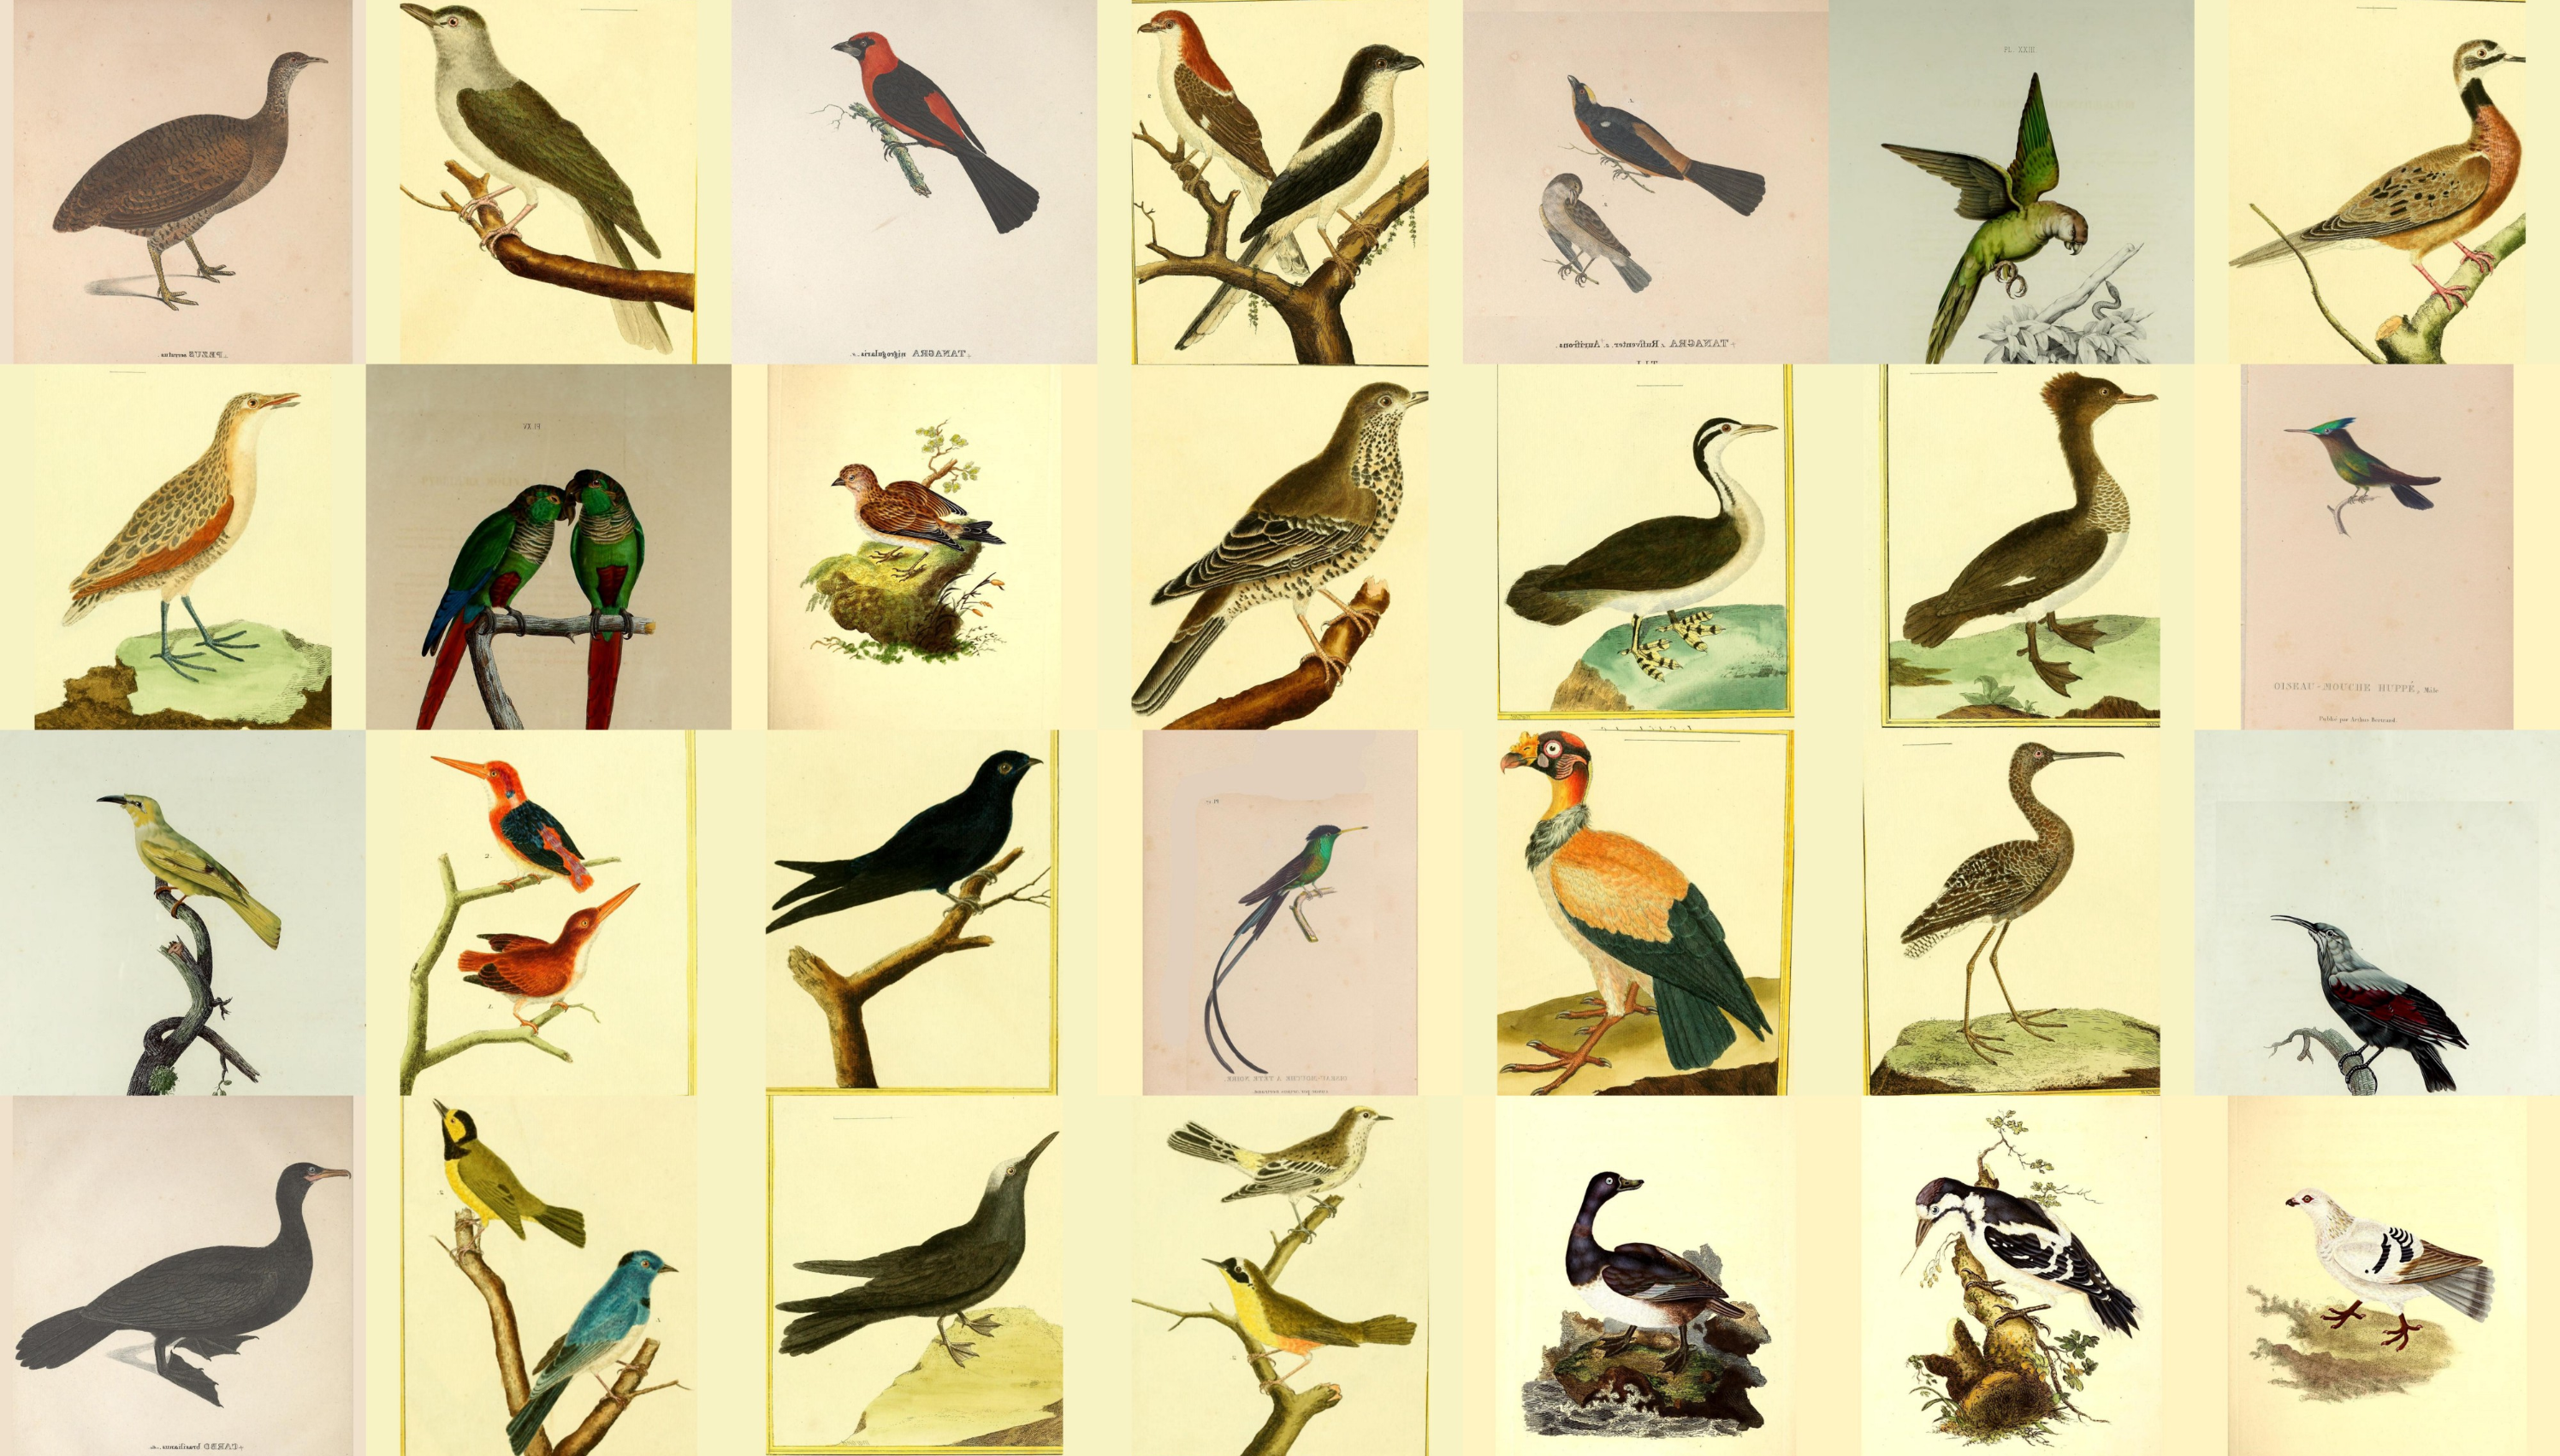 A contact sheet type layout with 28 real illustrations of different birds of different shapes, colours and positions. Some perching on branches, some on grass.